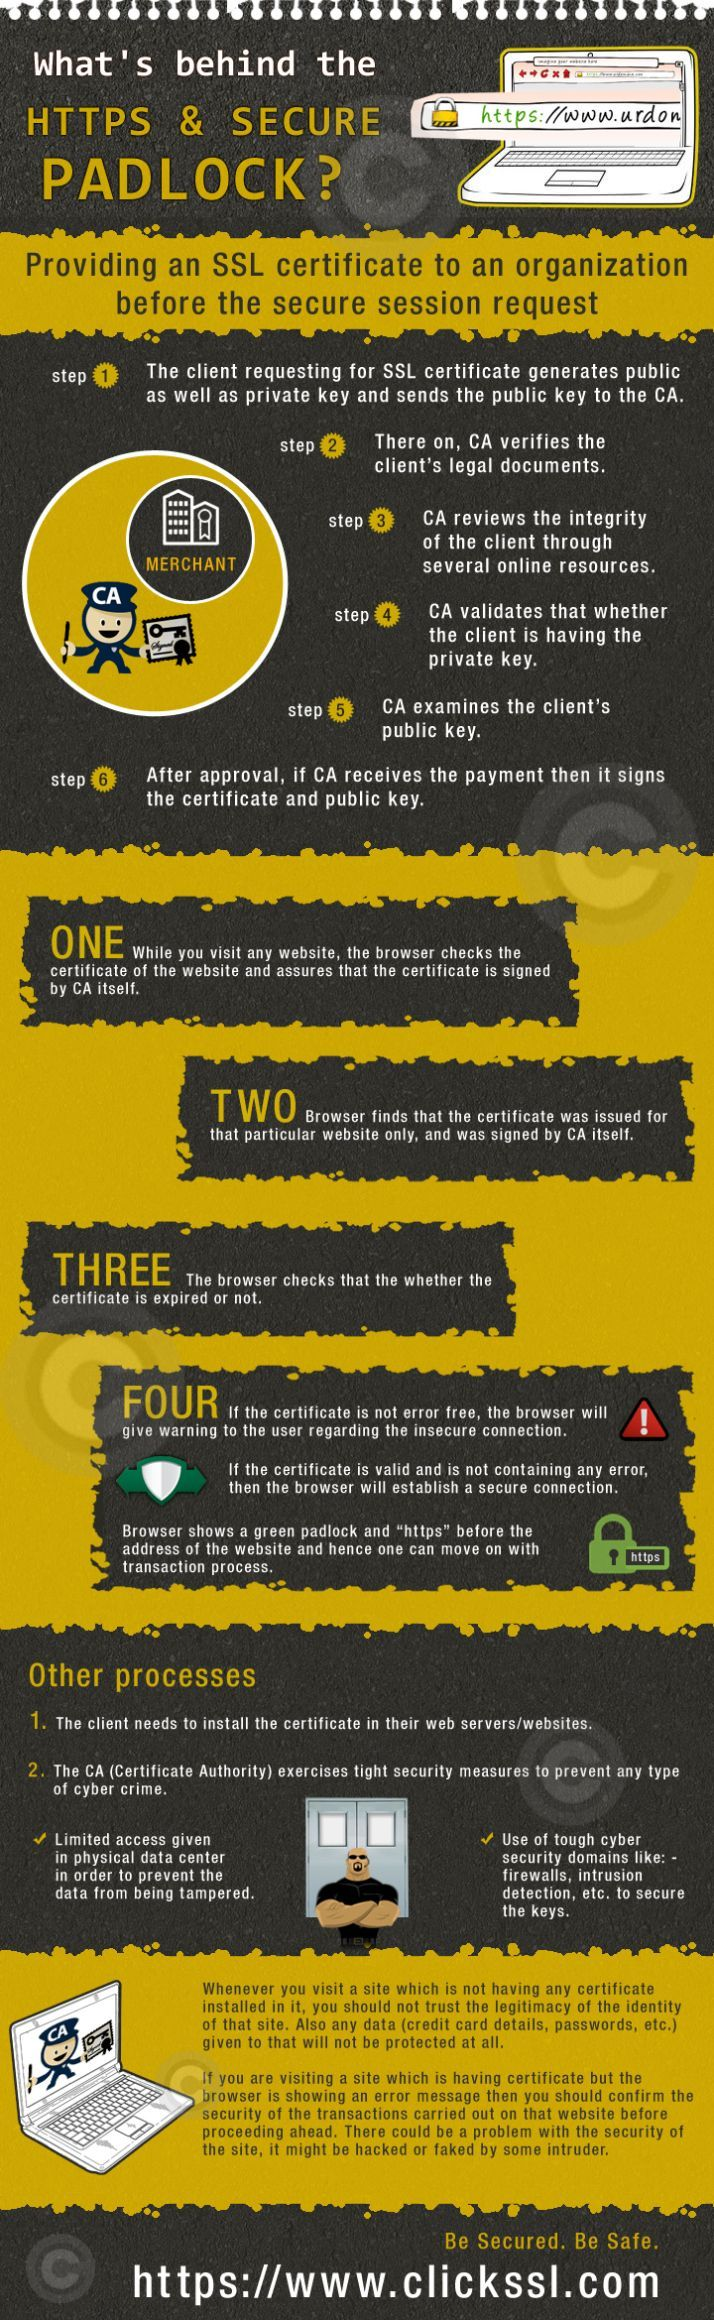 What's behind the https & Secure Padlock #infografia #infographic #internet